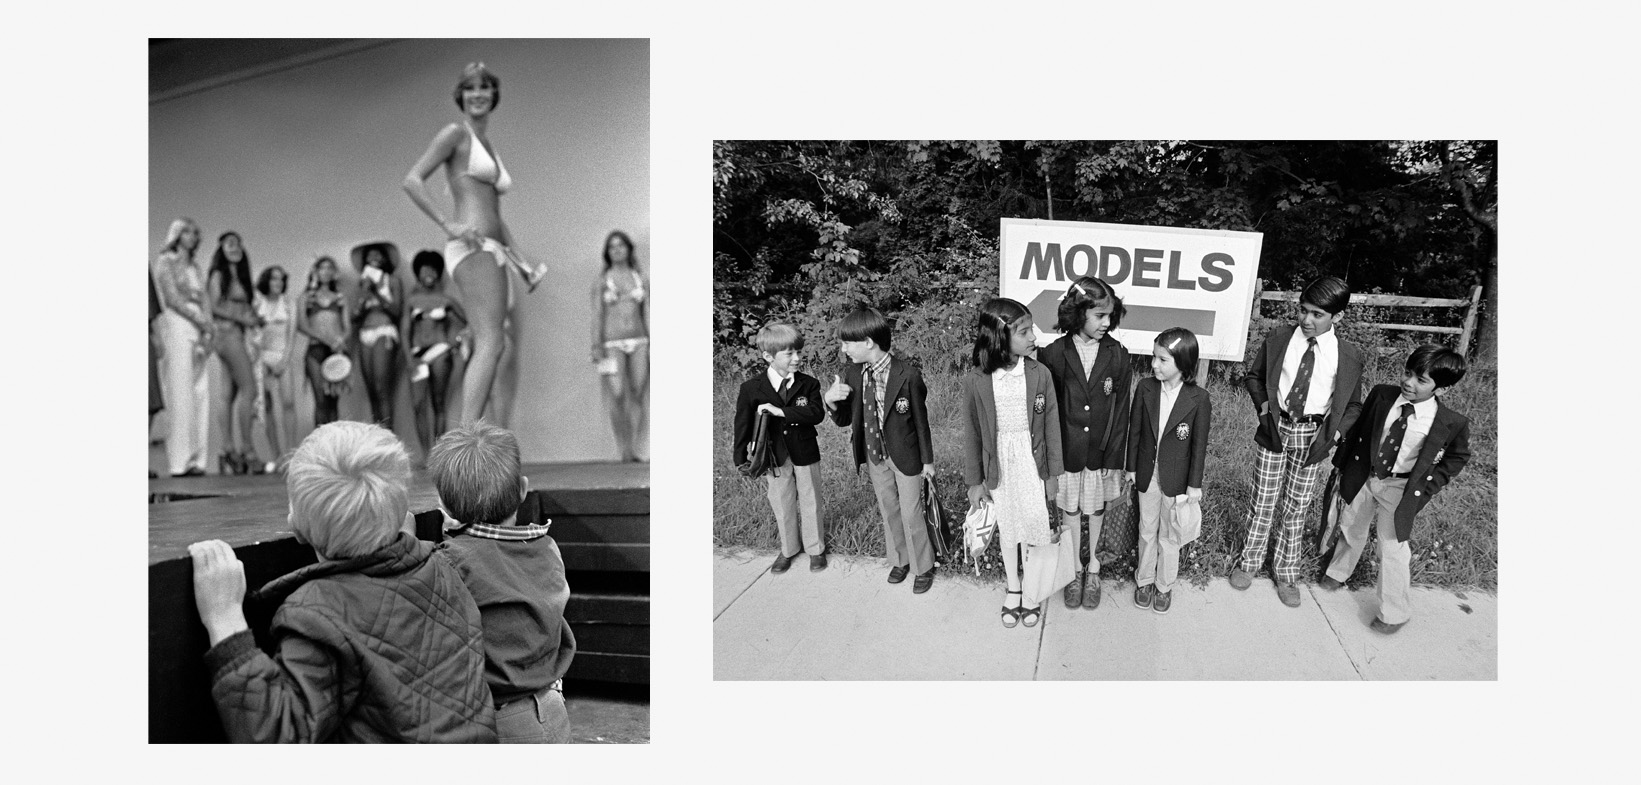 PP170-171_Beauty_Contest_California_1975-Private_School_Students_Maryland_1981.jpg